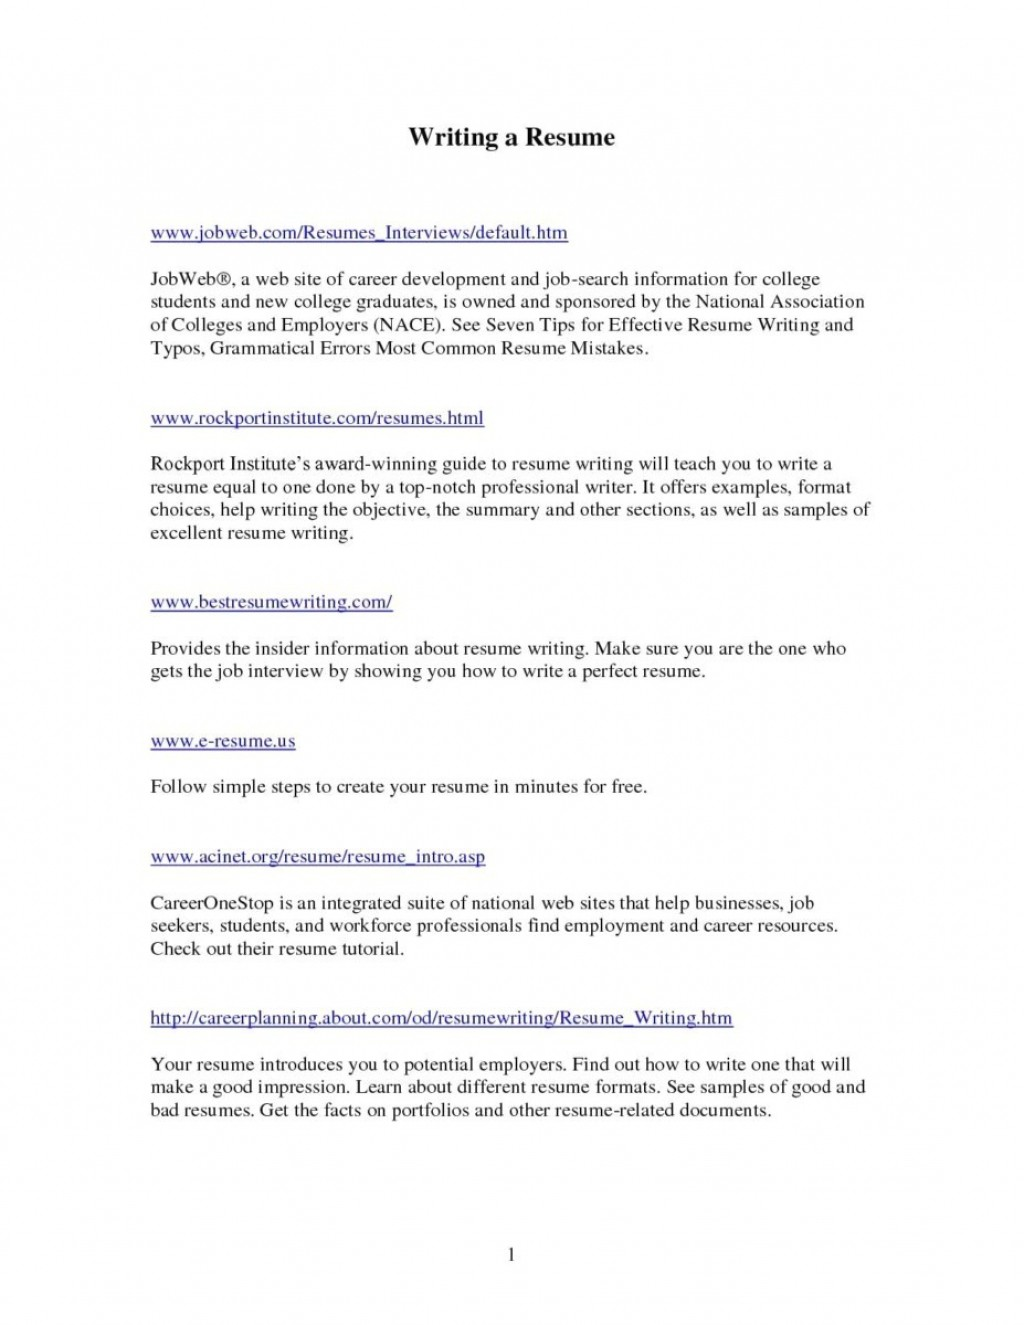 021 Resume Writing Service Reviews Format Best Writers Inspirational Help Professional Of Free Services How To Write Good Apa Research Unique A Paper Psychology Outline Do You Large